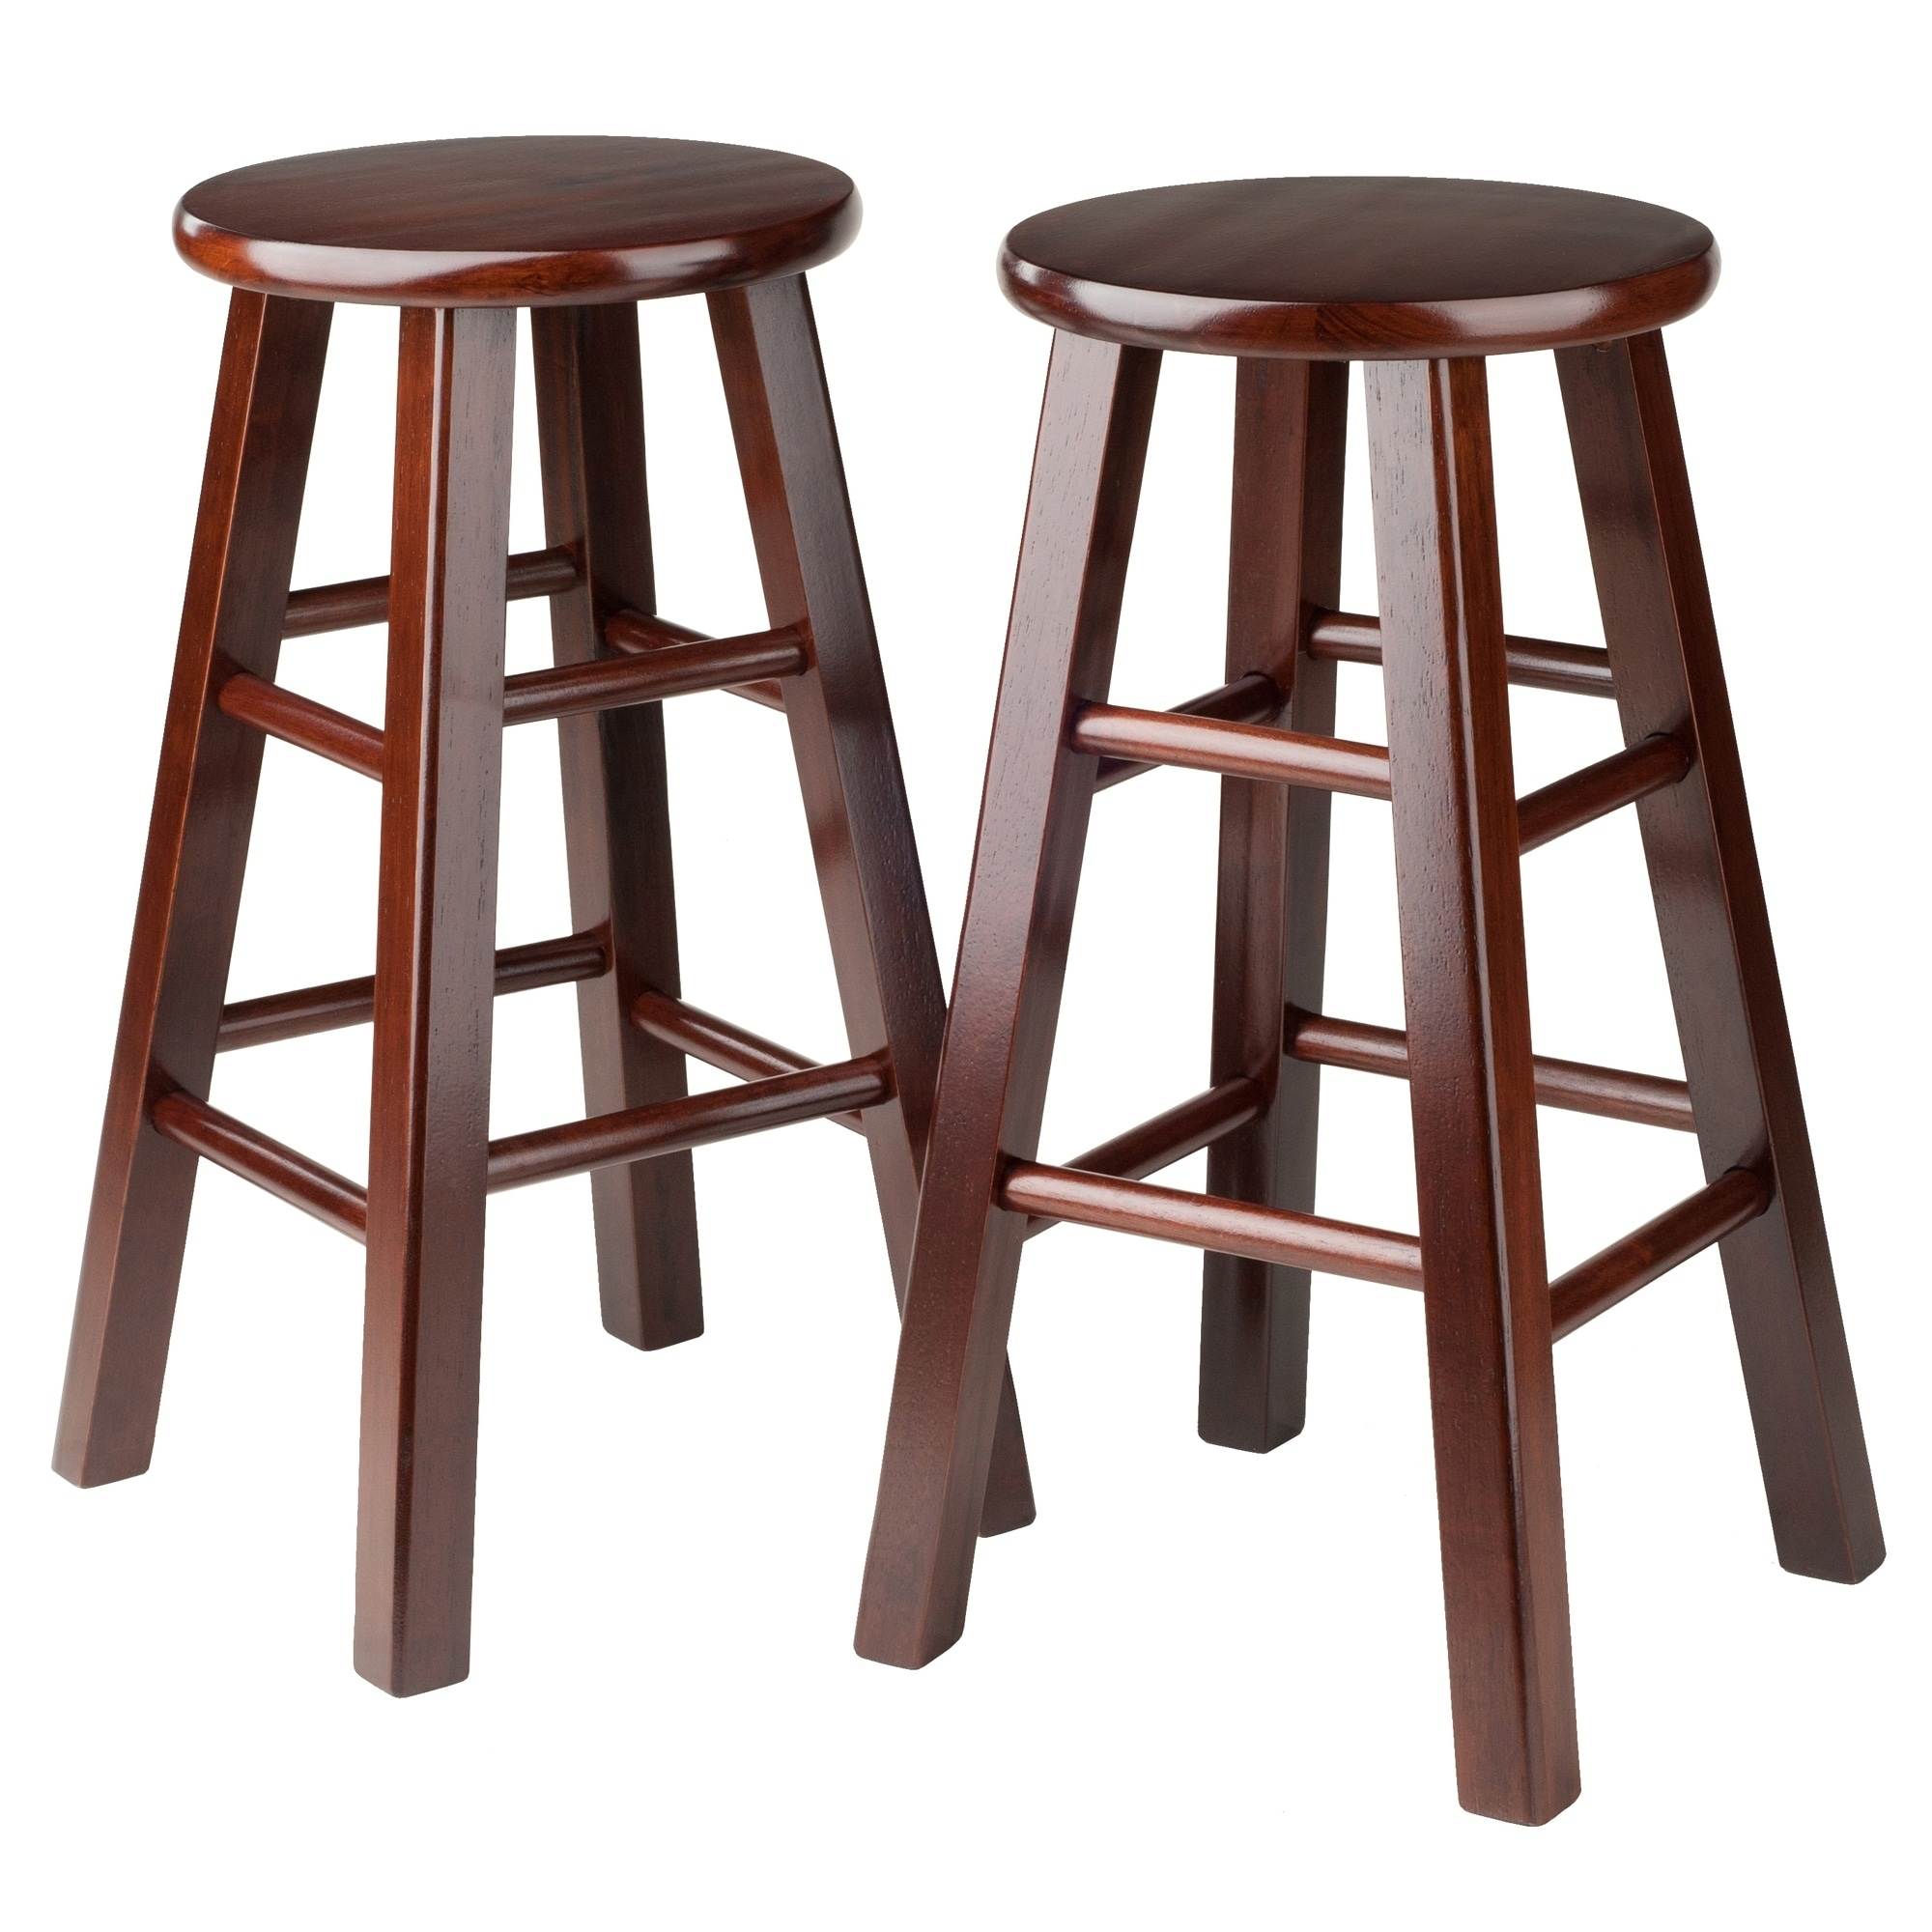 Pacey 2-Pc 24 Bar Stool Set Antique Walnut